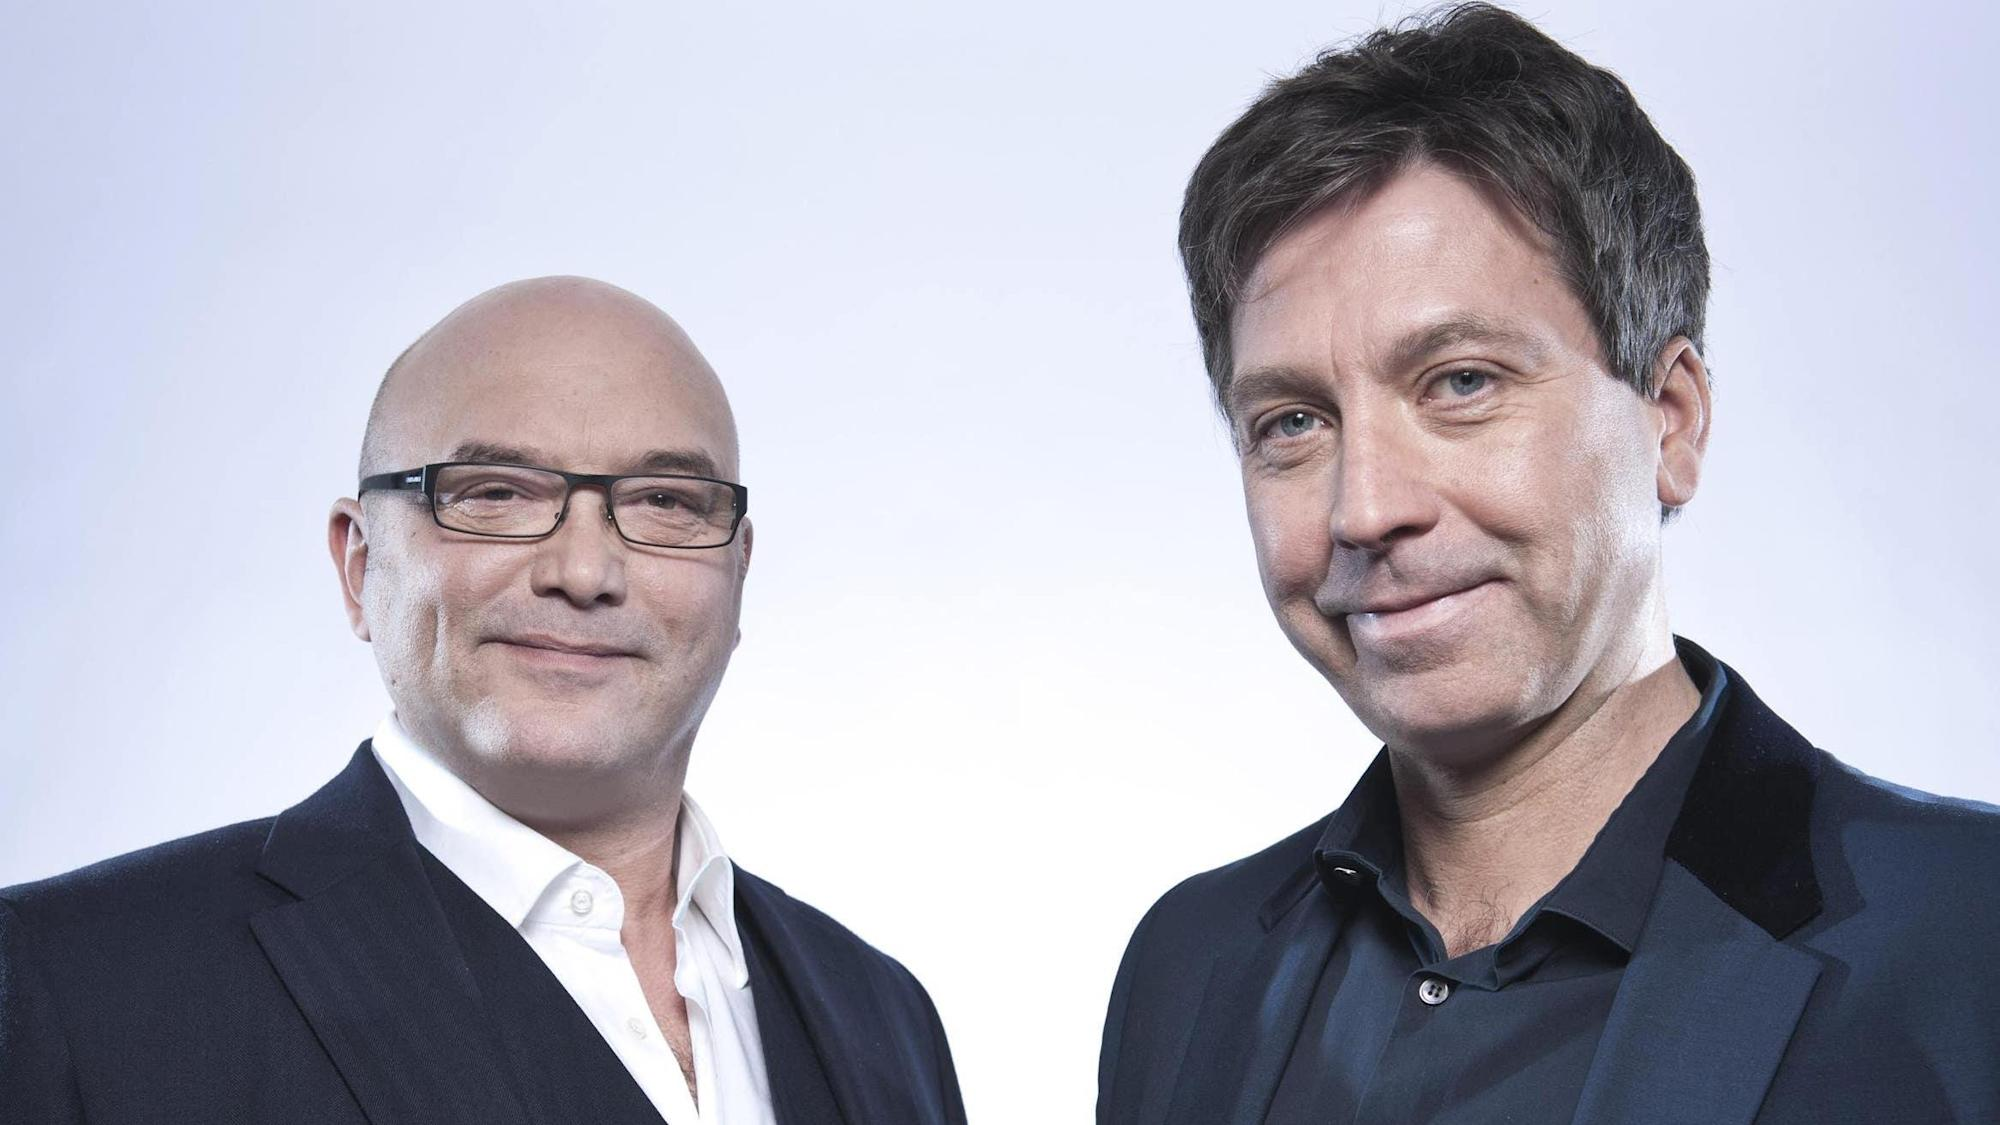 John Torode says lockdown has raised the quality of MasterChef contestants